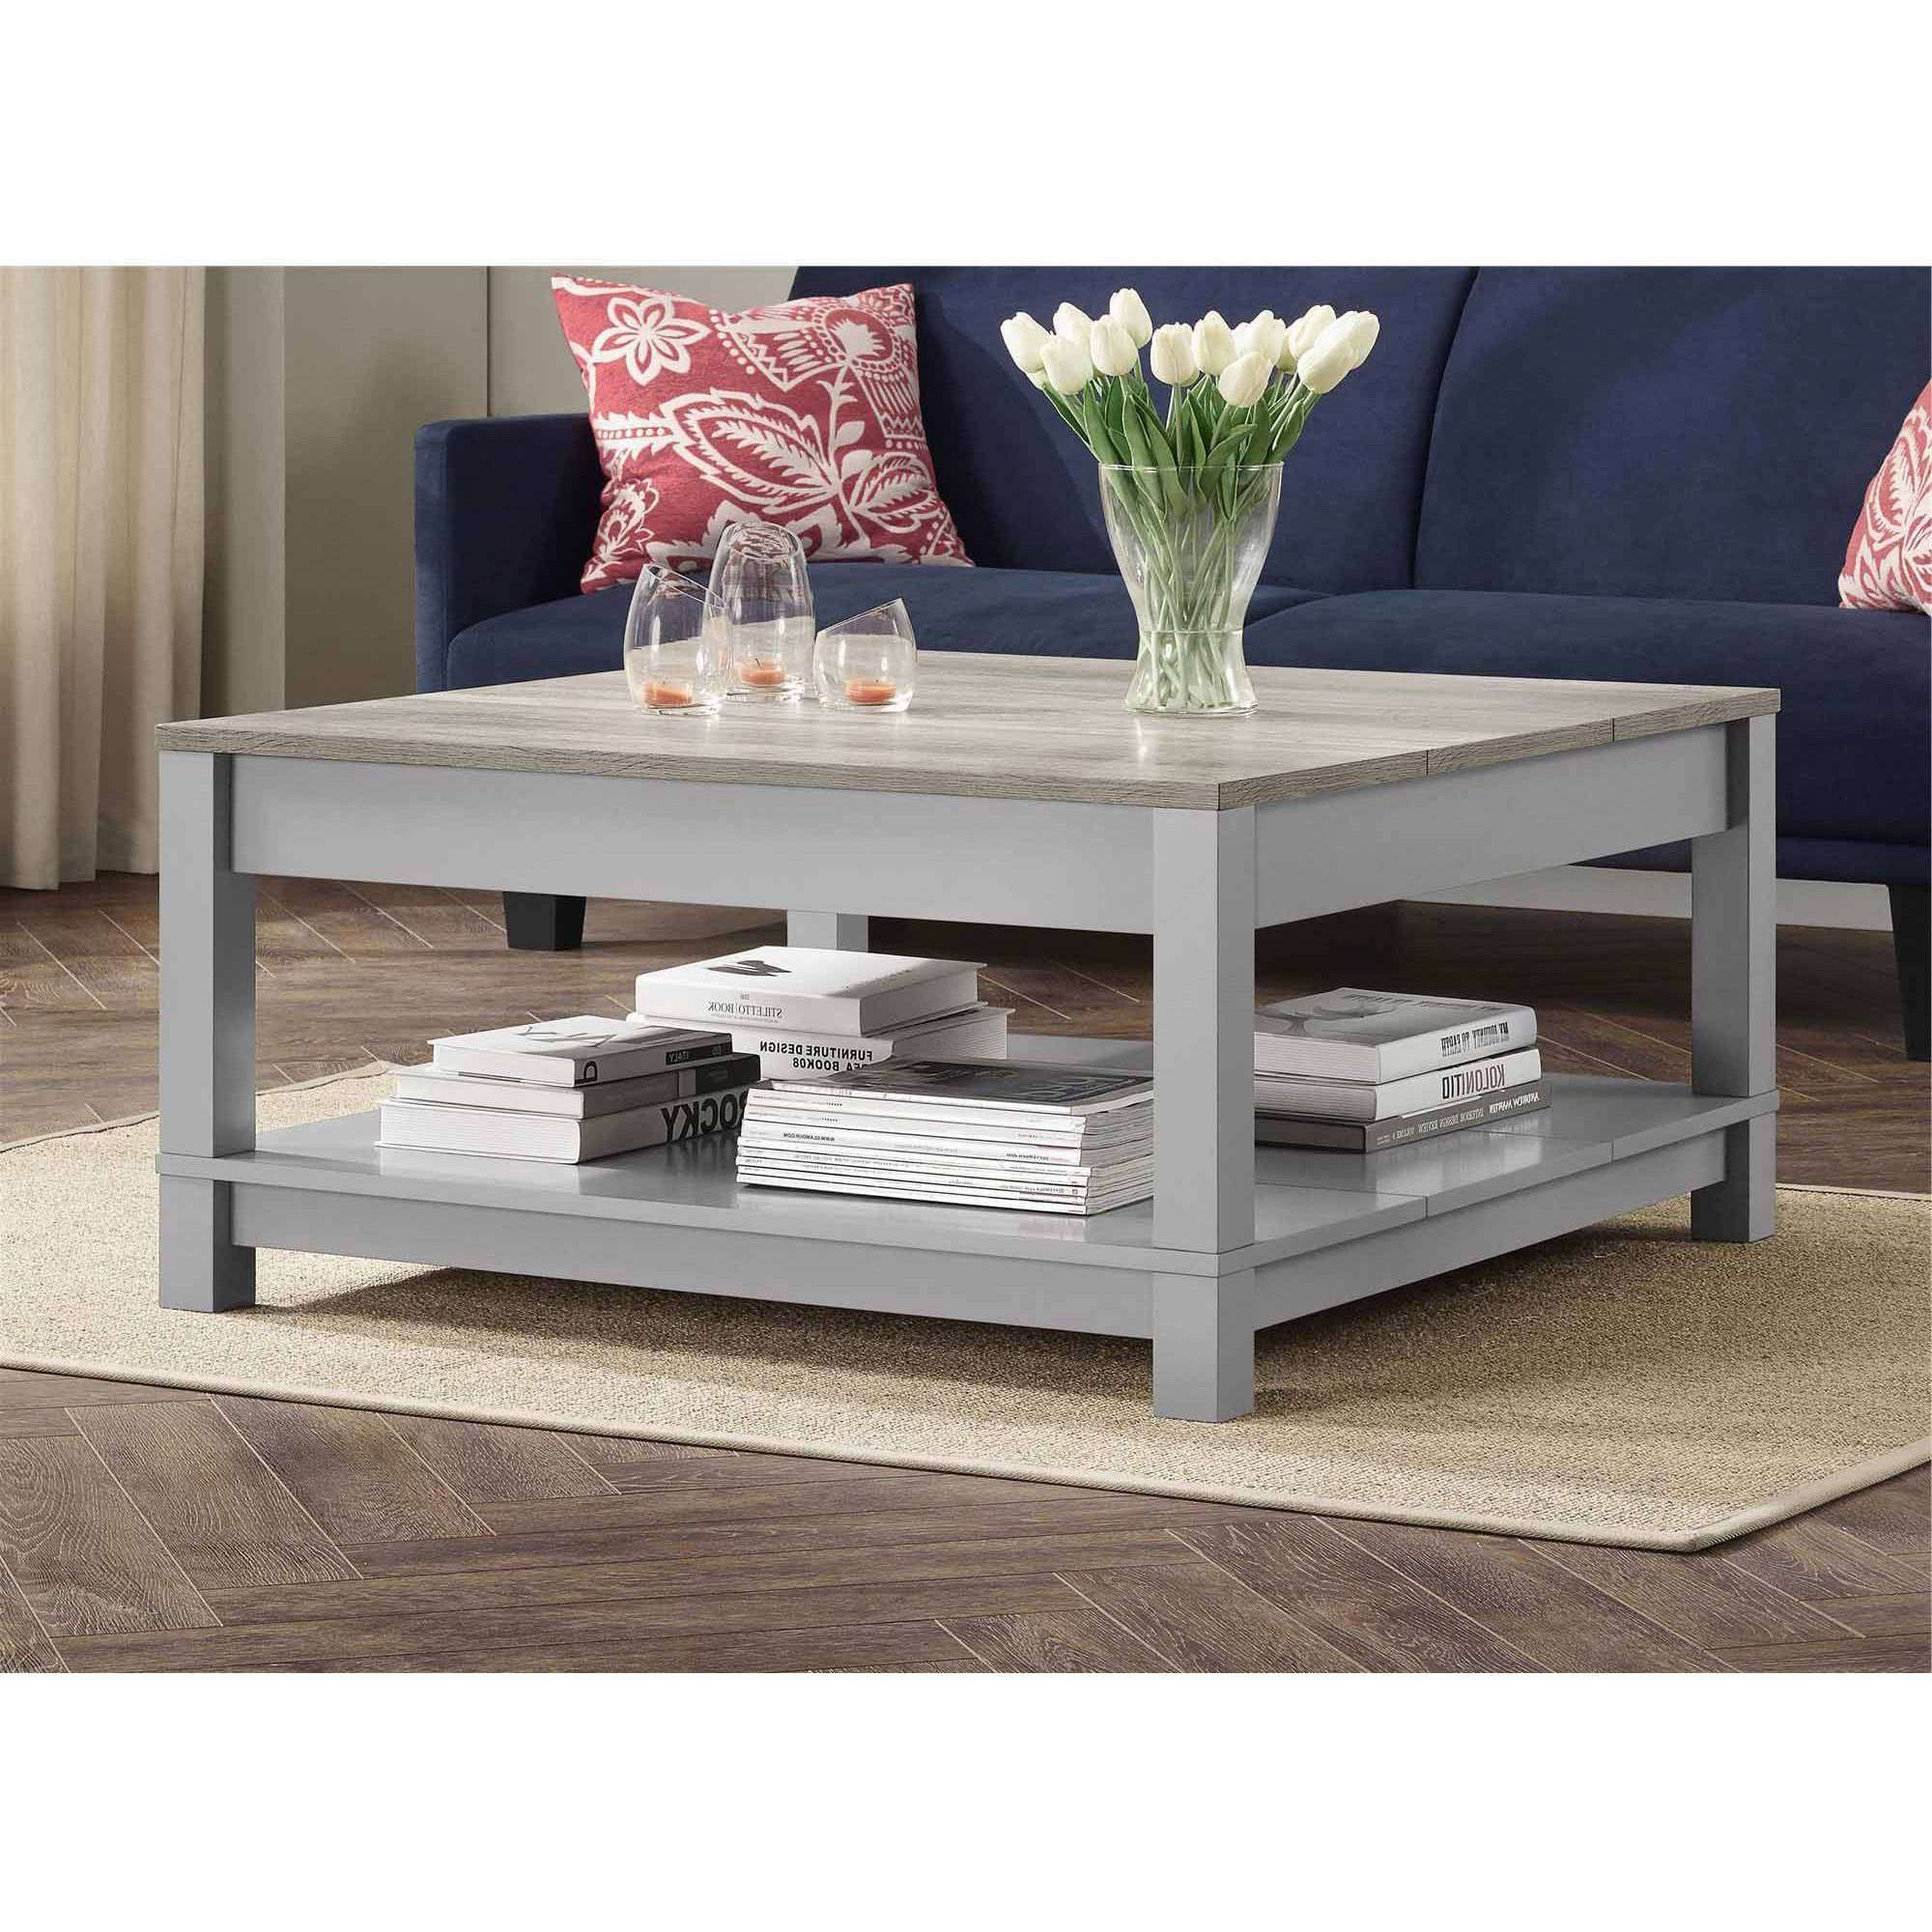 Better Homes And Gardens Langley Bay Coffee Table, Multiple Colors Inside Most Up To Date Wooden Garden Coffee Tables (View 2 of 20)